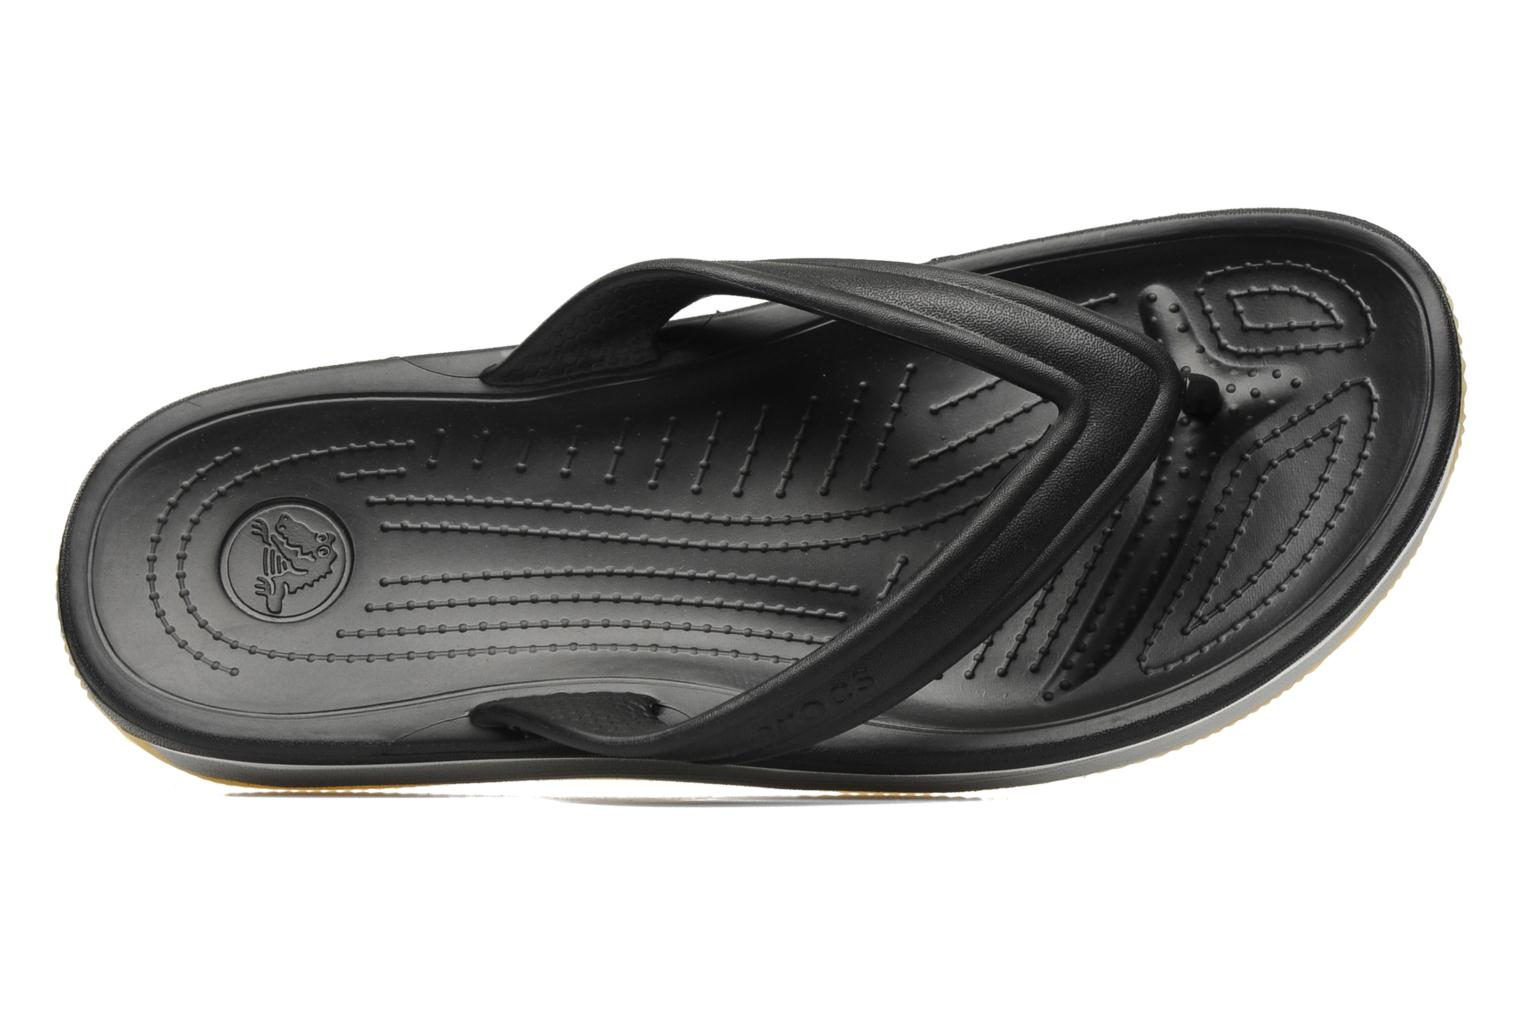 Crocs Retro Flip-Flop Black/light Grey